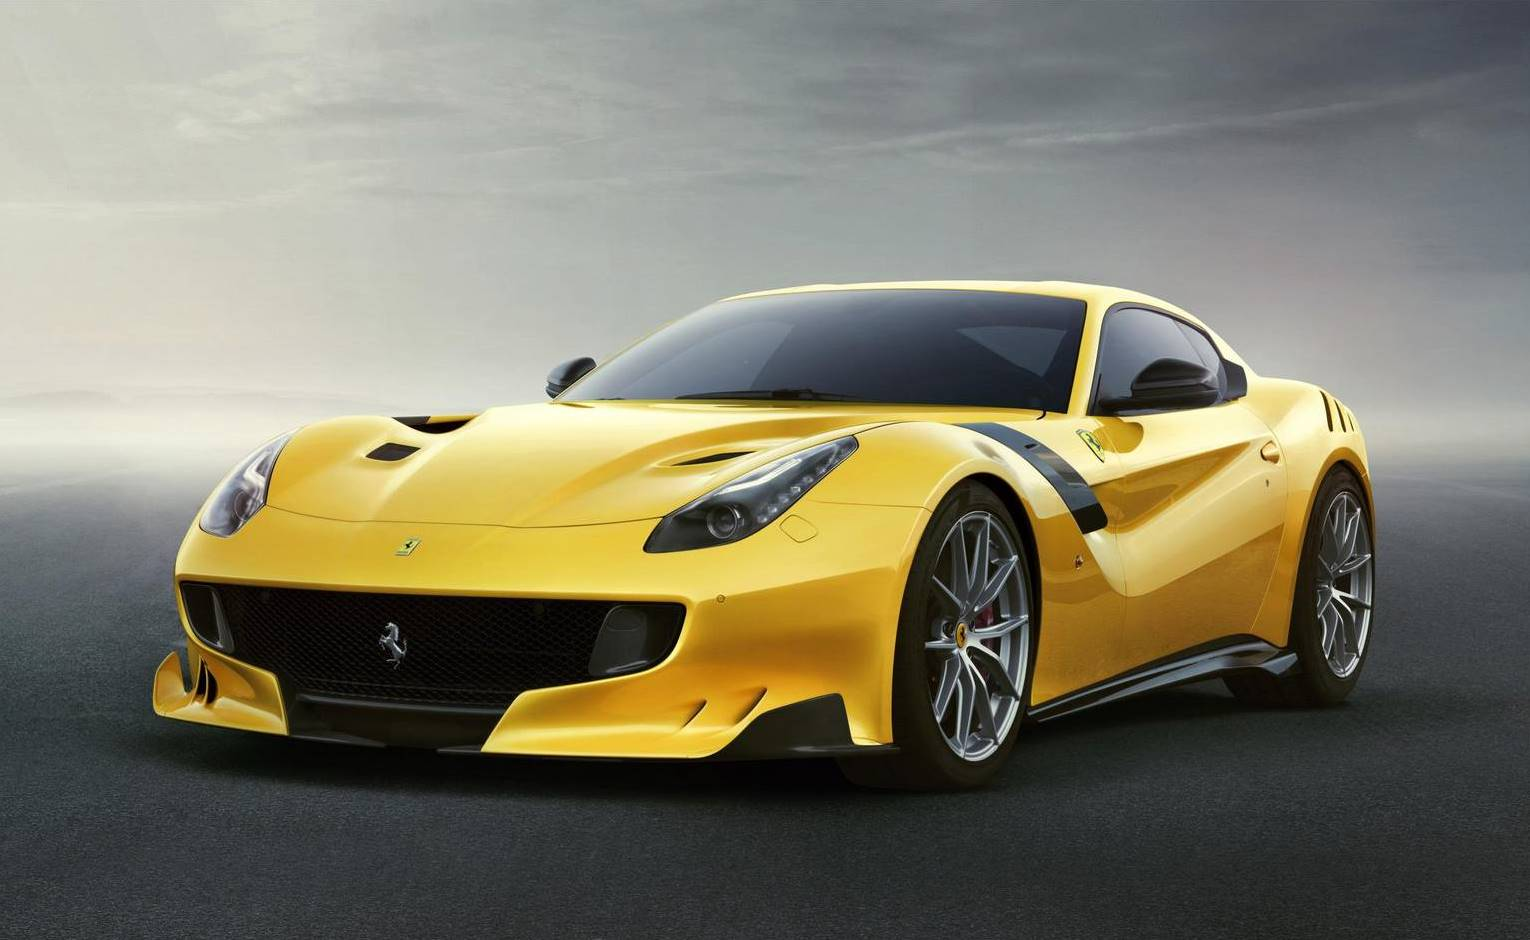 A public debut for the head-turning Ferrari F12tdf